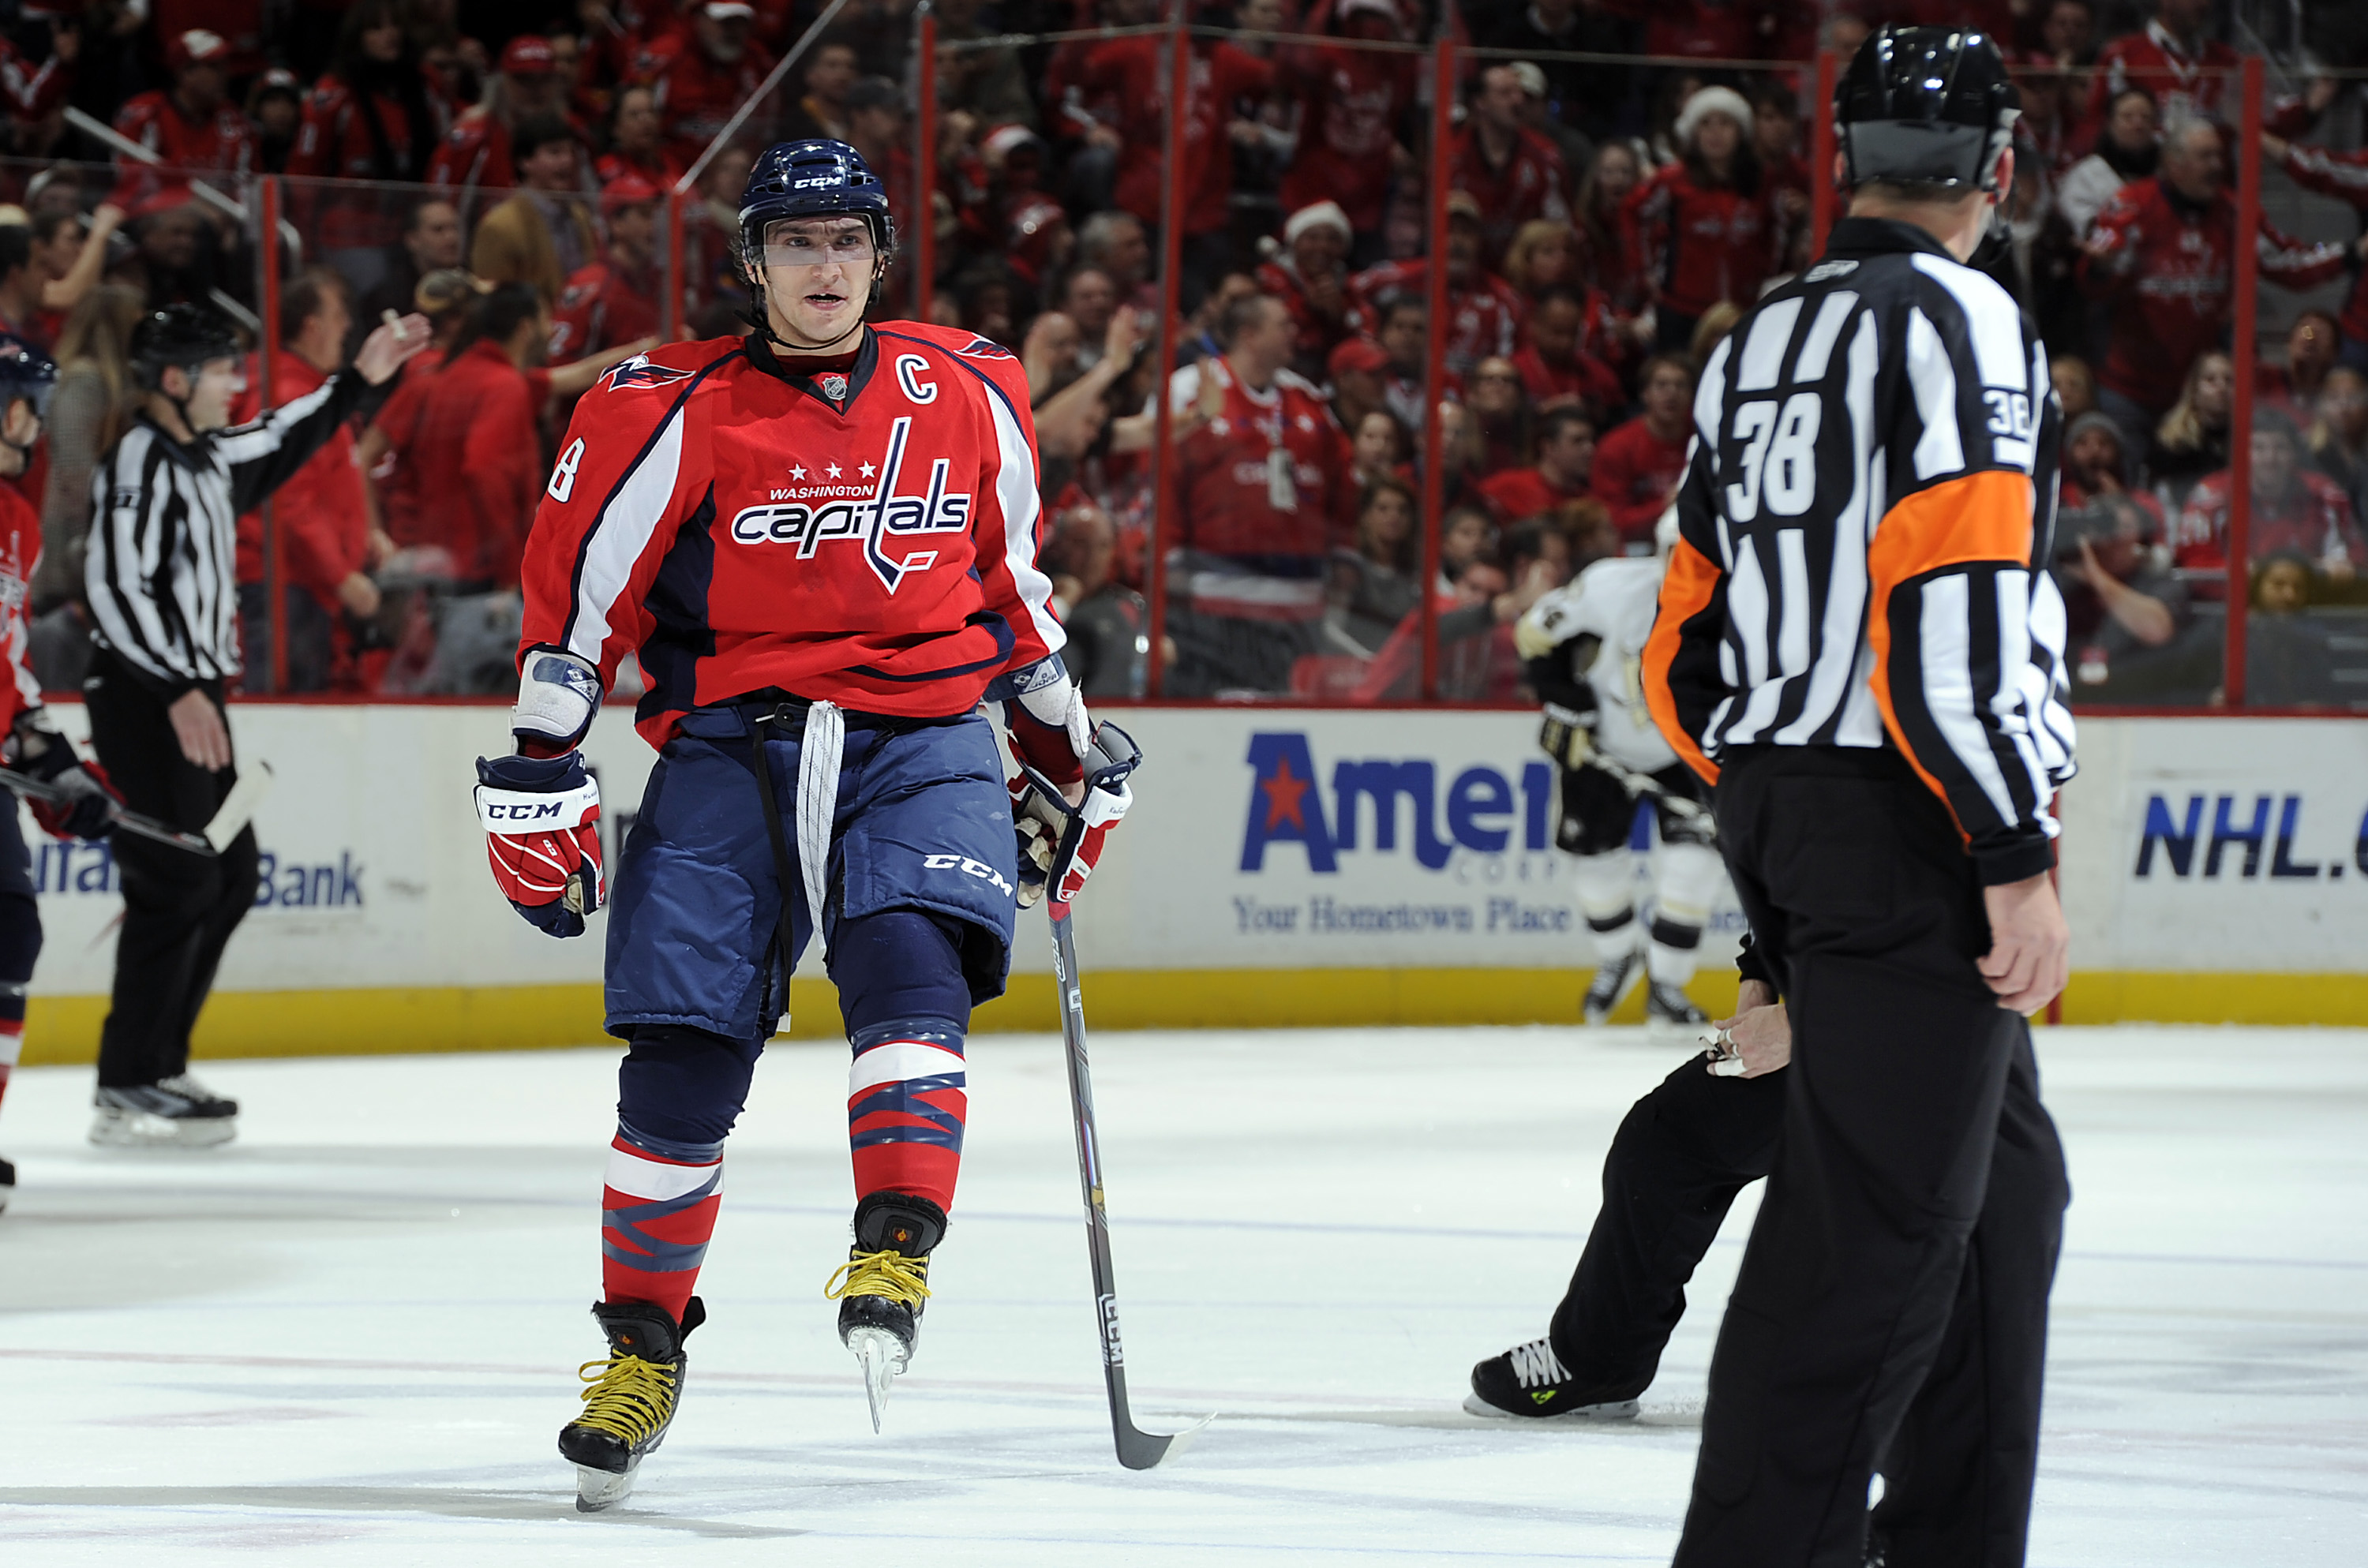 WASHINGTON, DC - DECEMBER 23:  Alex Ovechkin #8 of the Washington Capitals yells at an official after being called for a penalty during the game against the Pittsburgh Penguins at the Verizon Center on December 23, 2010 in Washington DC. The Penguins won